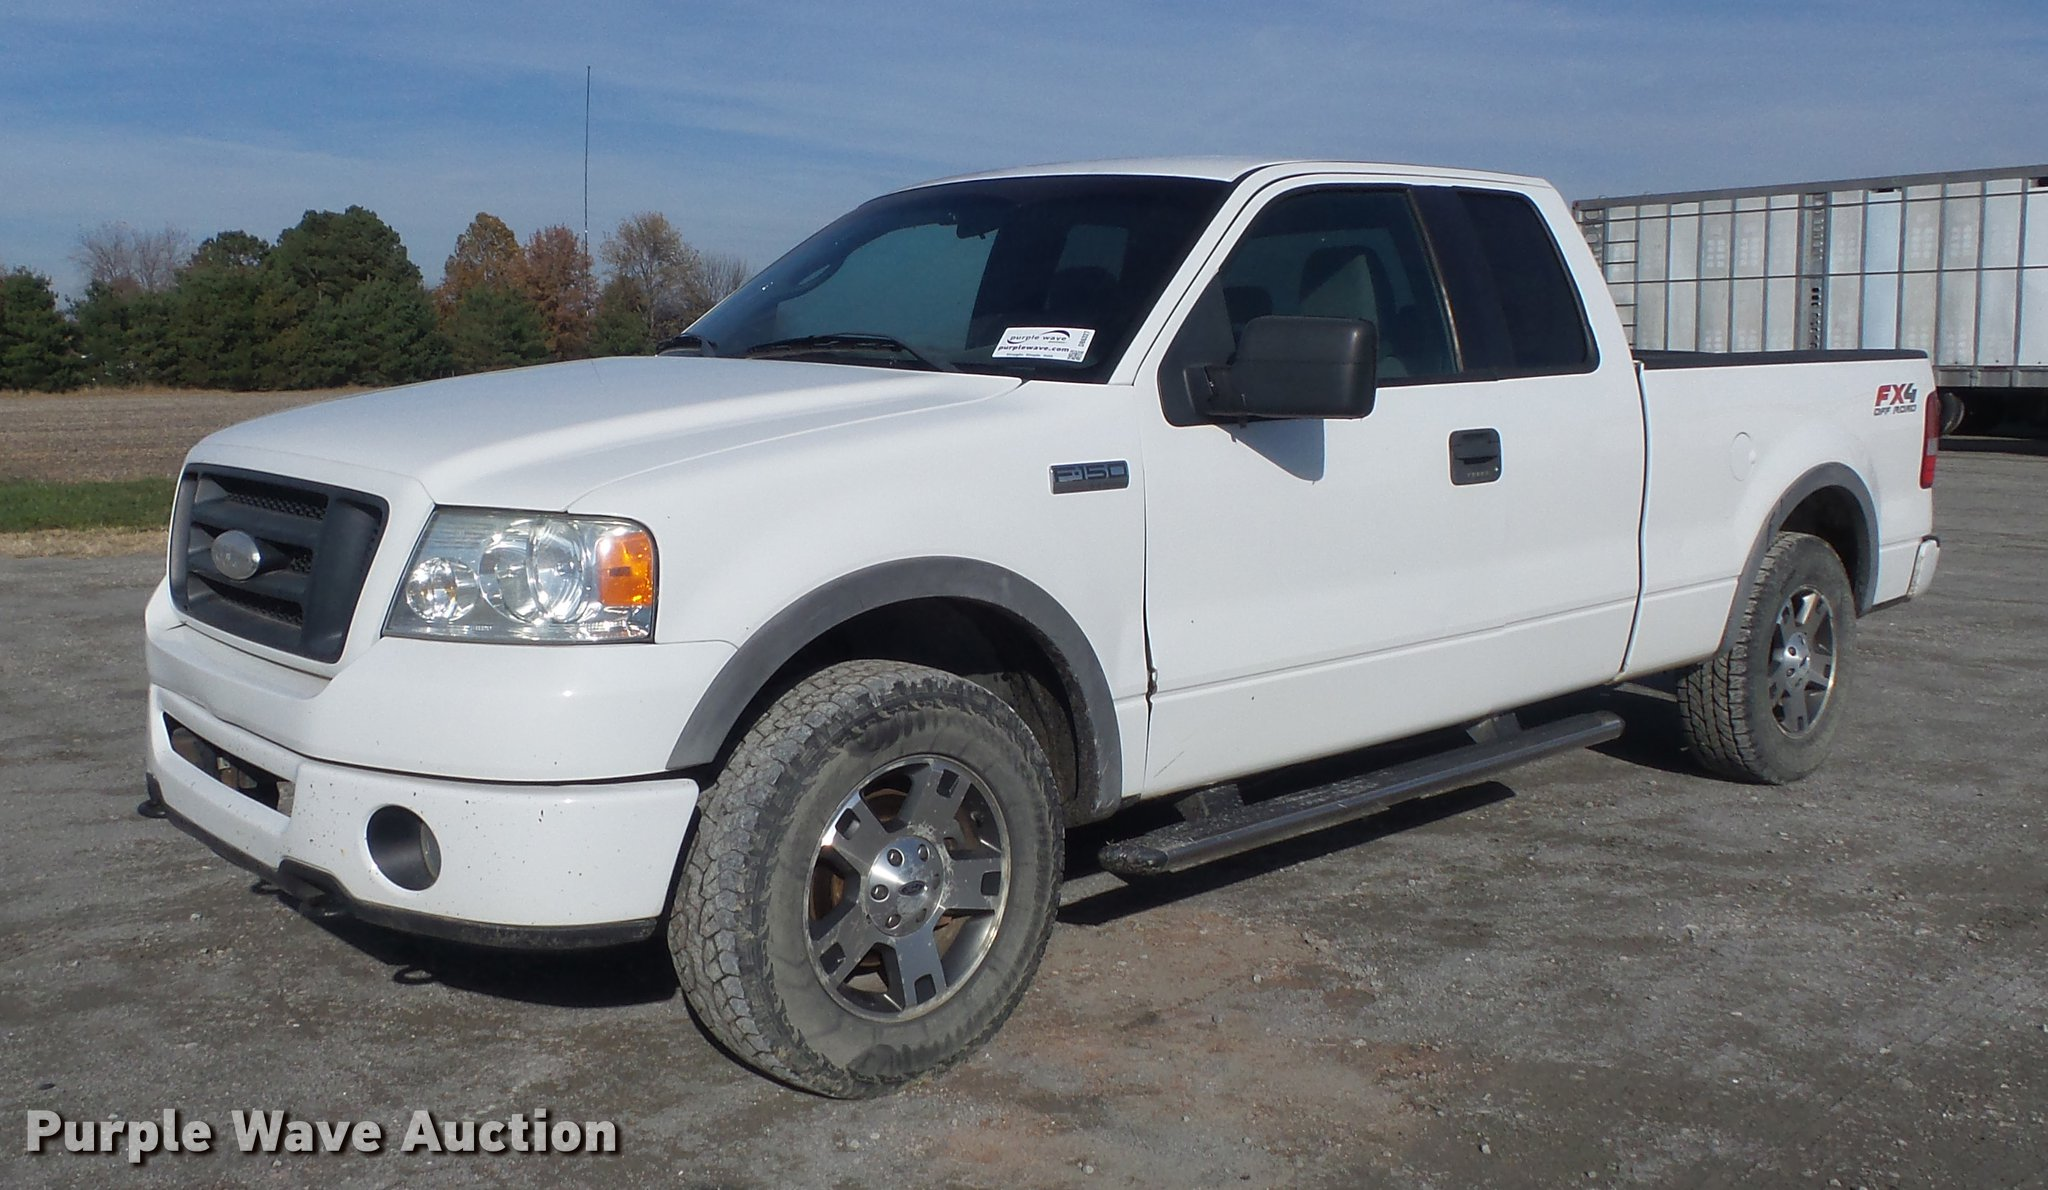 2006 Ford F150 Fx4 Supercab Pickup Truck In Carlyle Il Item Db6327 Sold Purple Wave